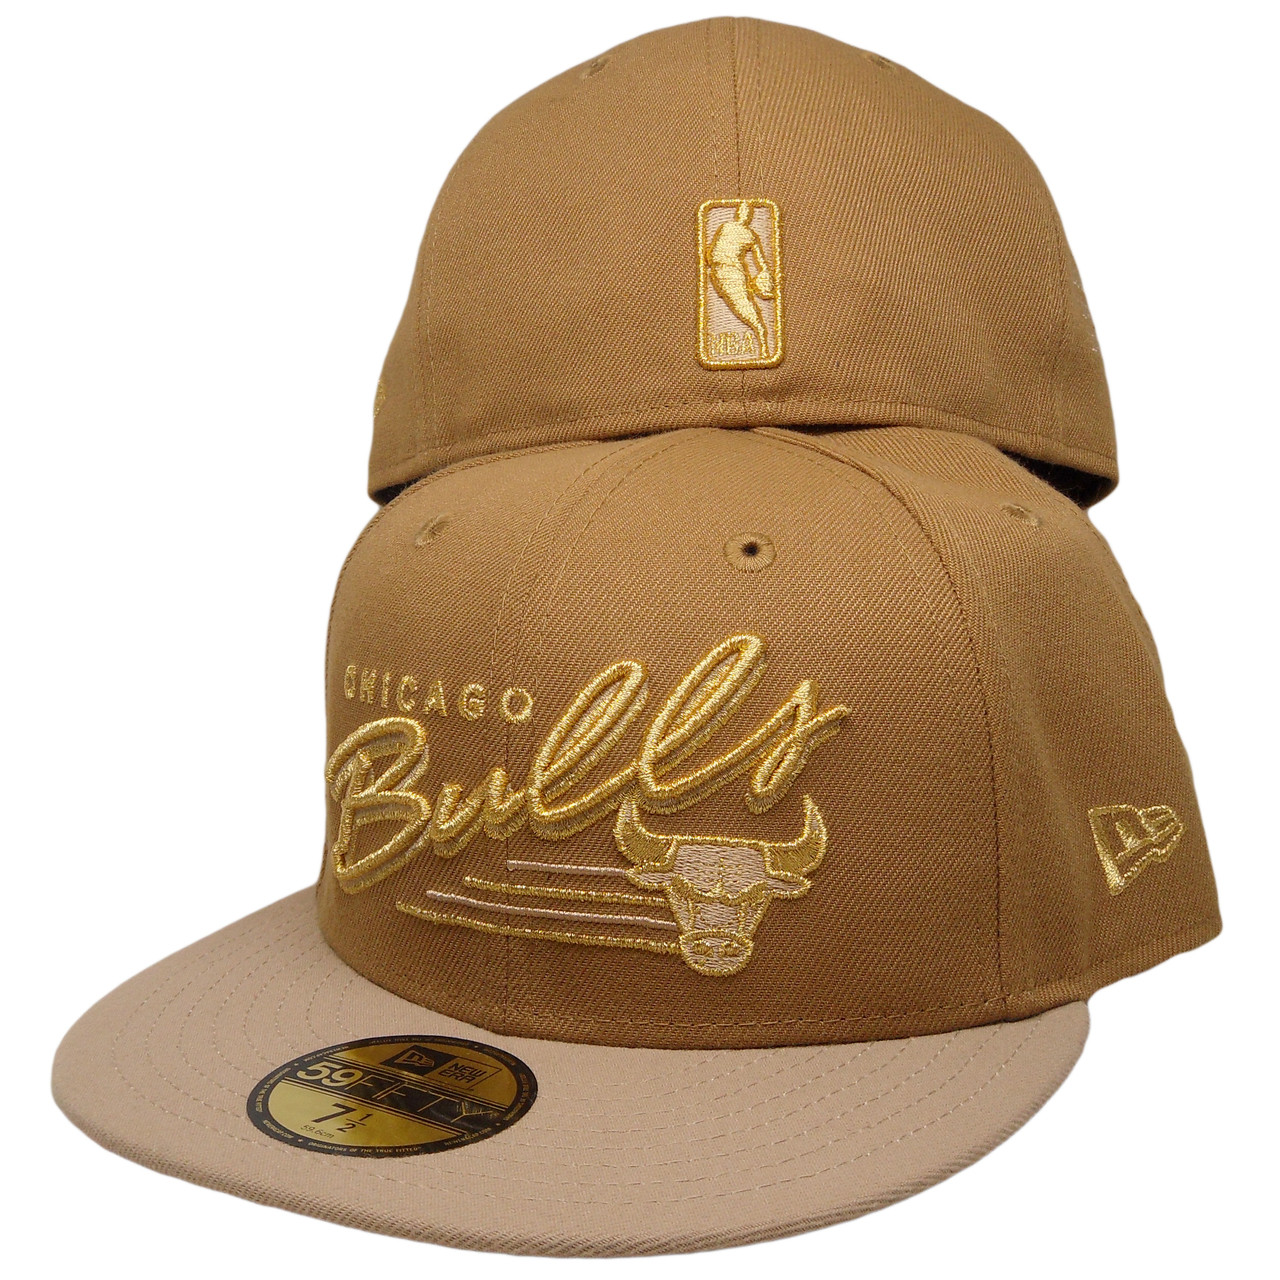 e99c2bf0910 Chicago Bulls New Era Custom 59Fifty Fitted Hat - Wheat